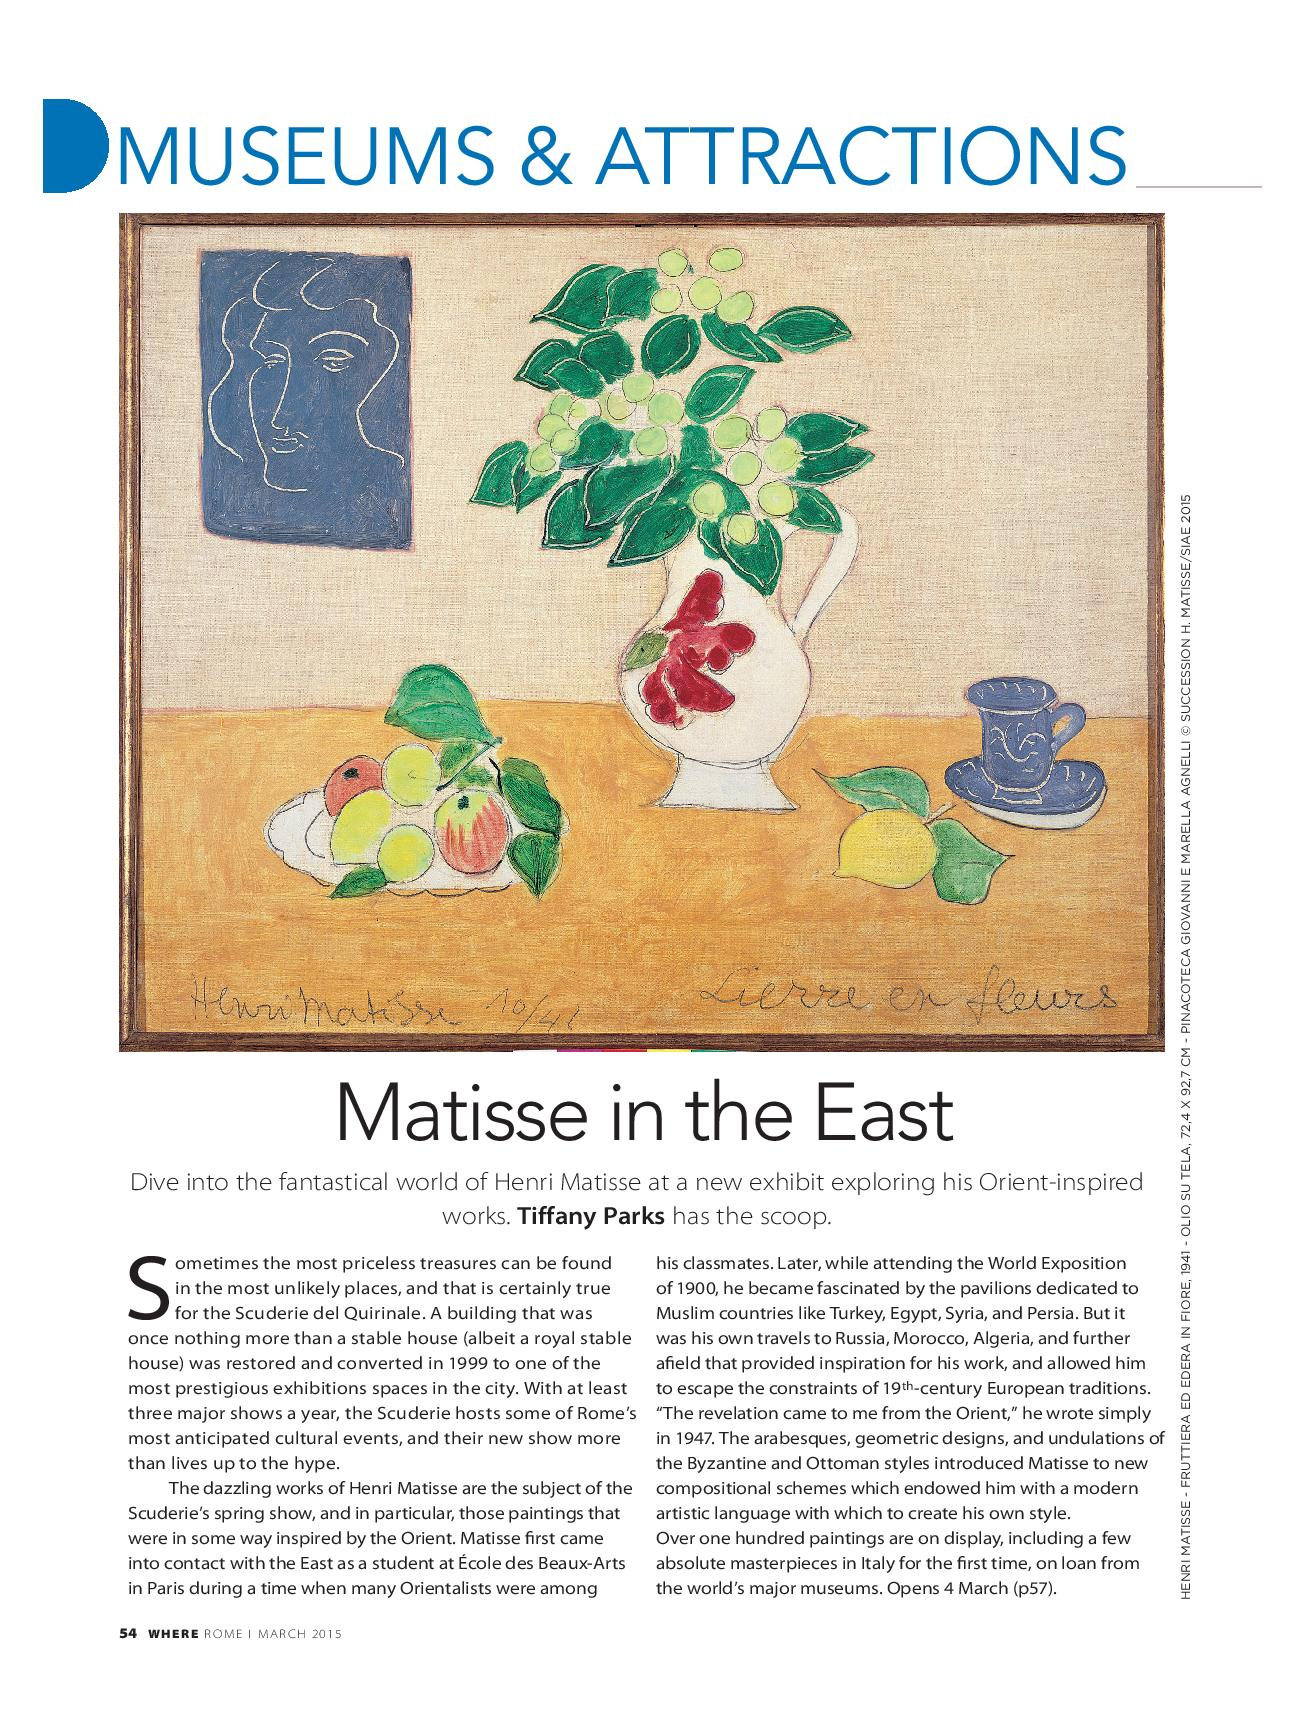 Matisse in the East, March 2015-page-001.jpg